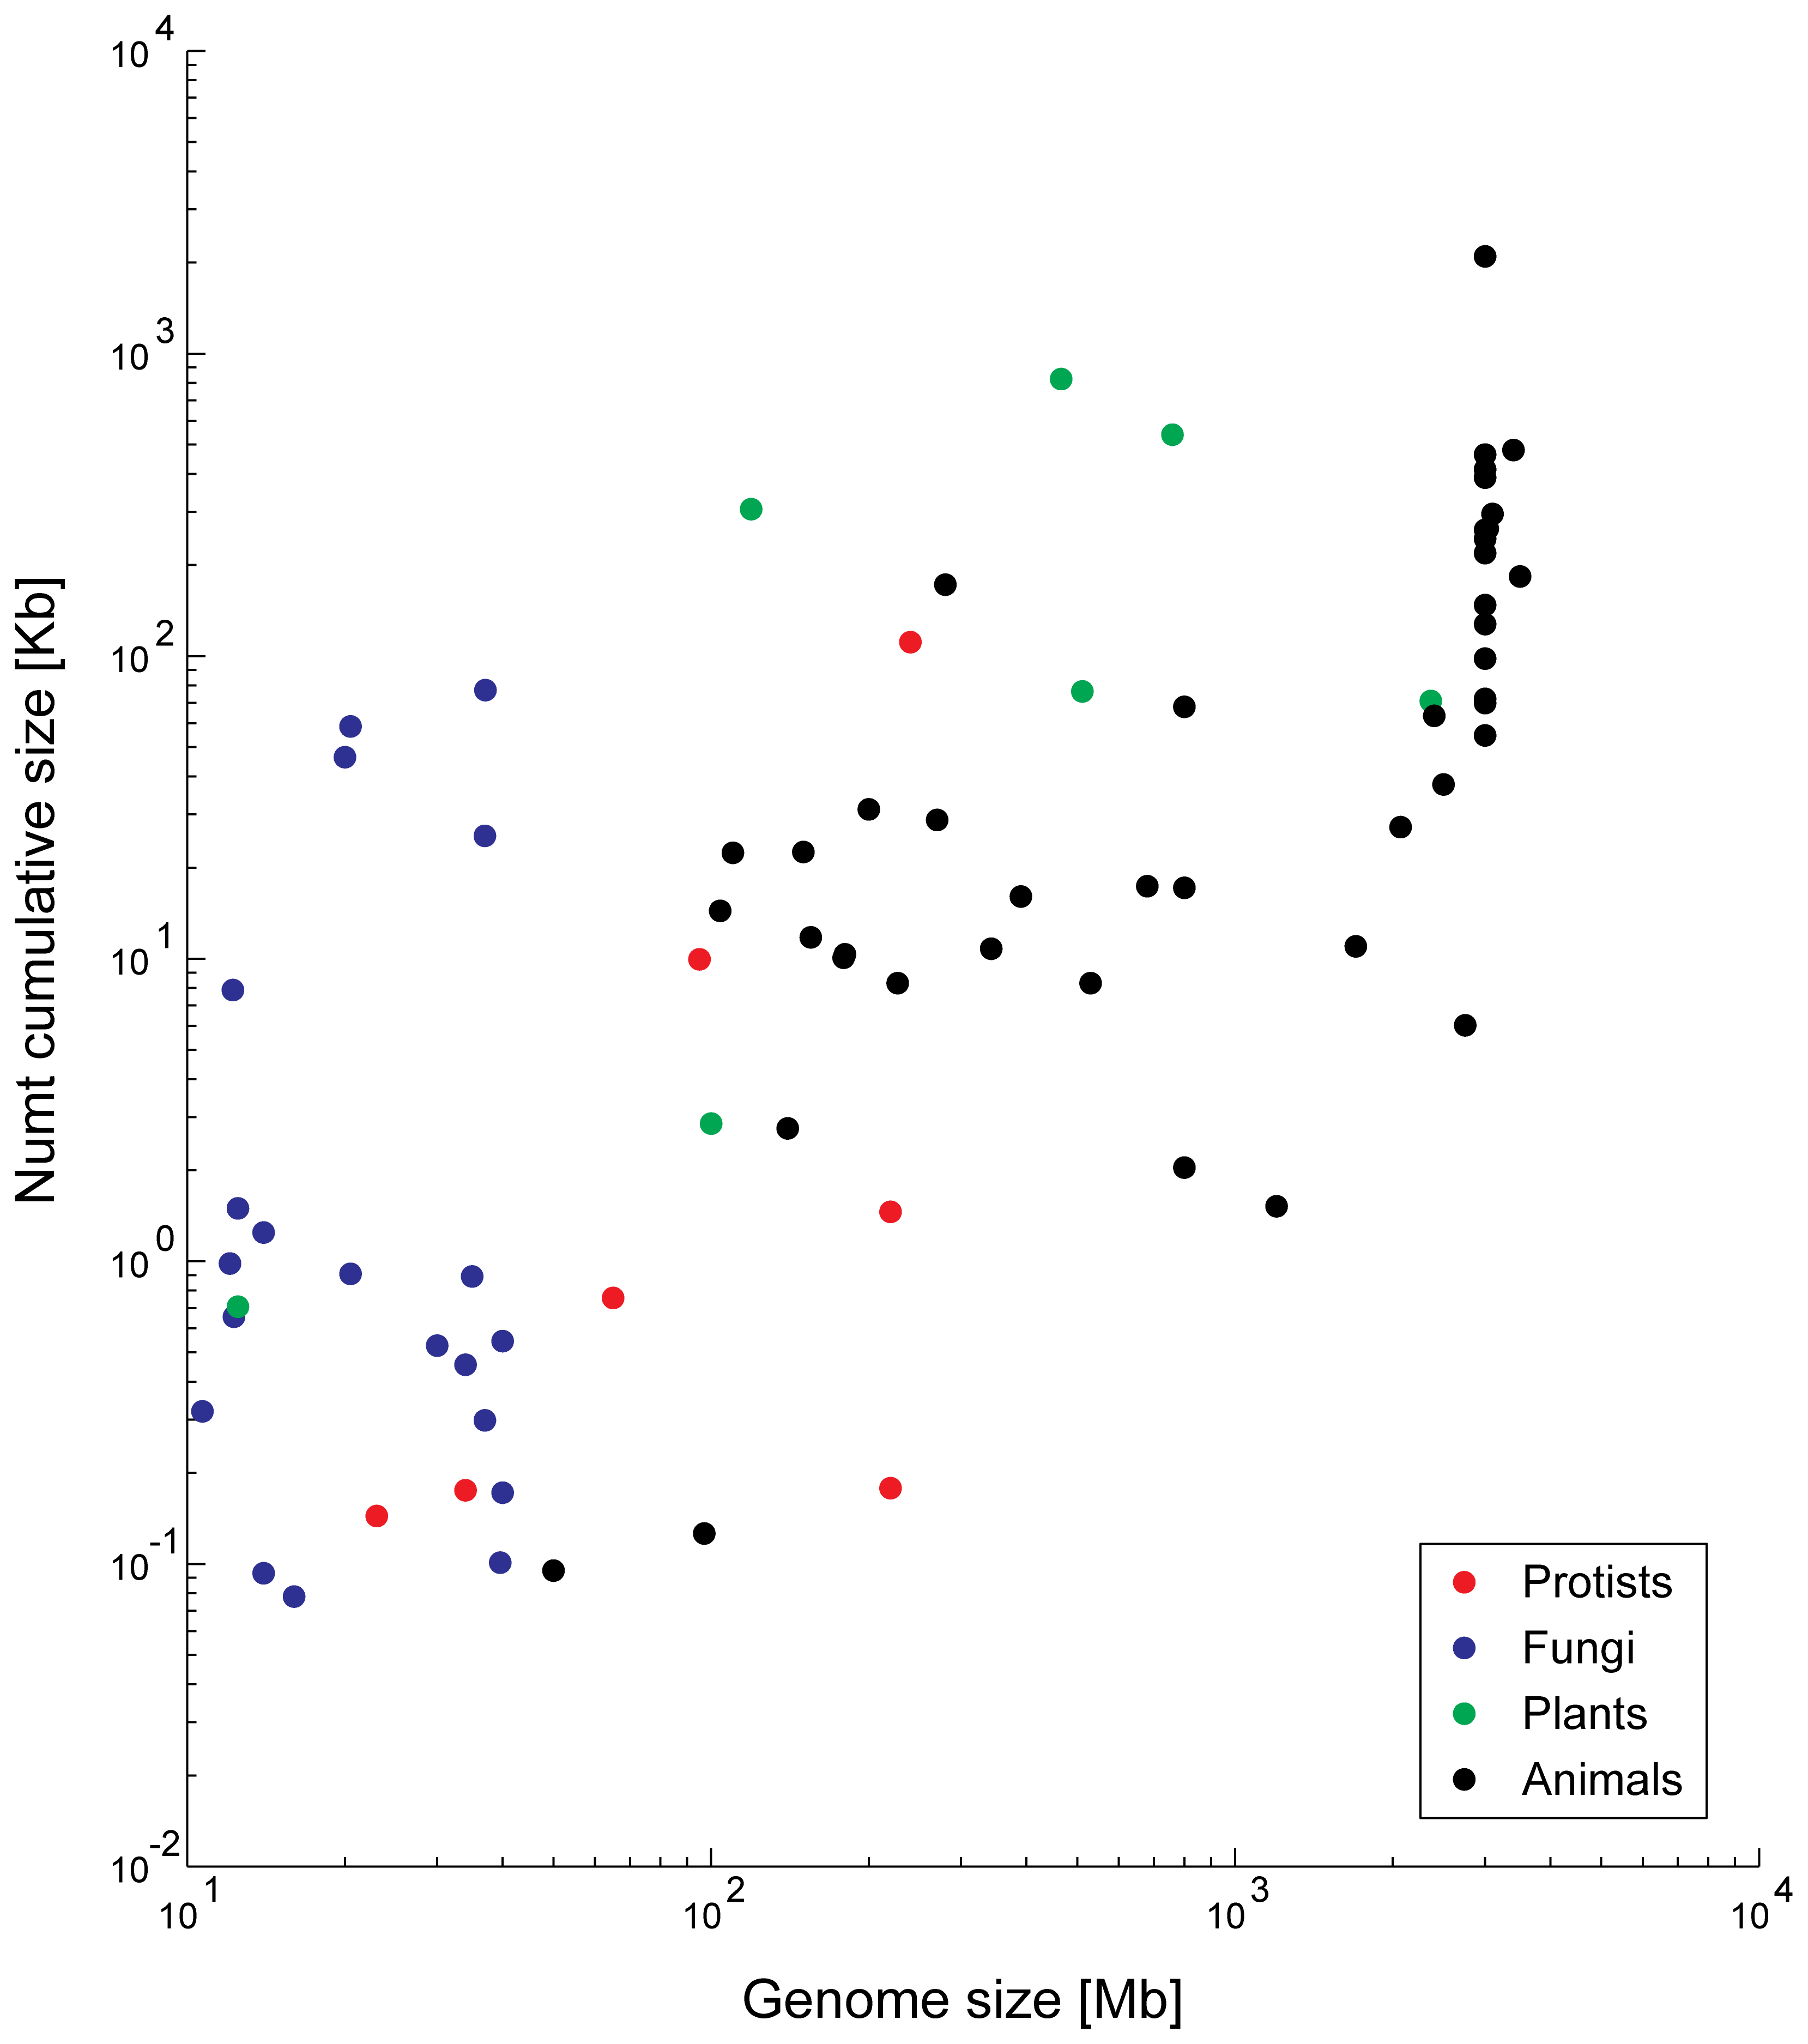 <i>Numt</i> content is correlated to genome size.